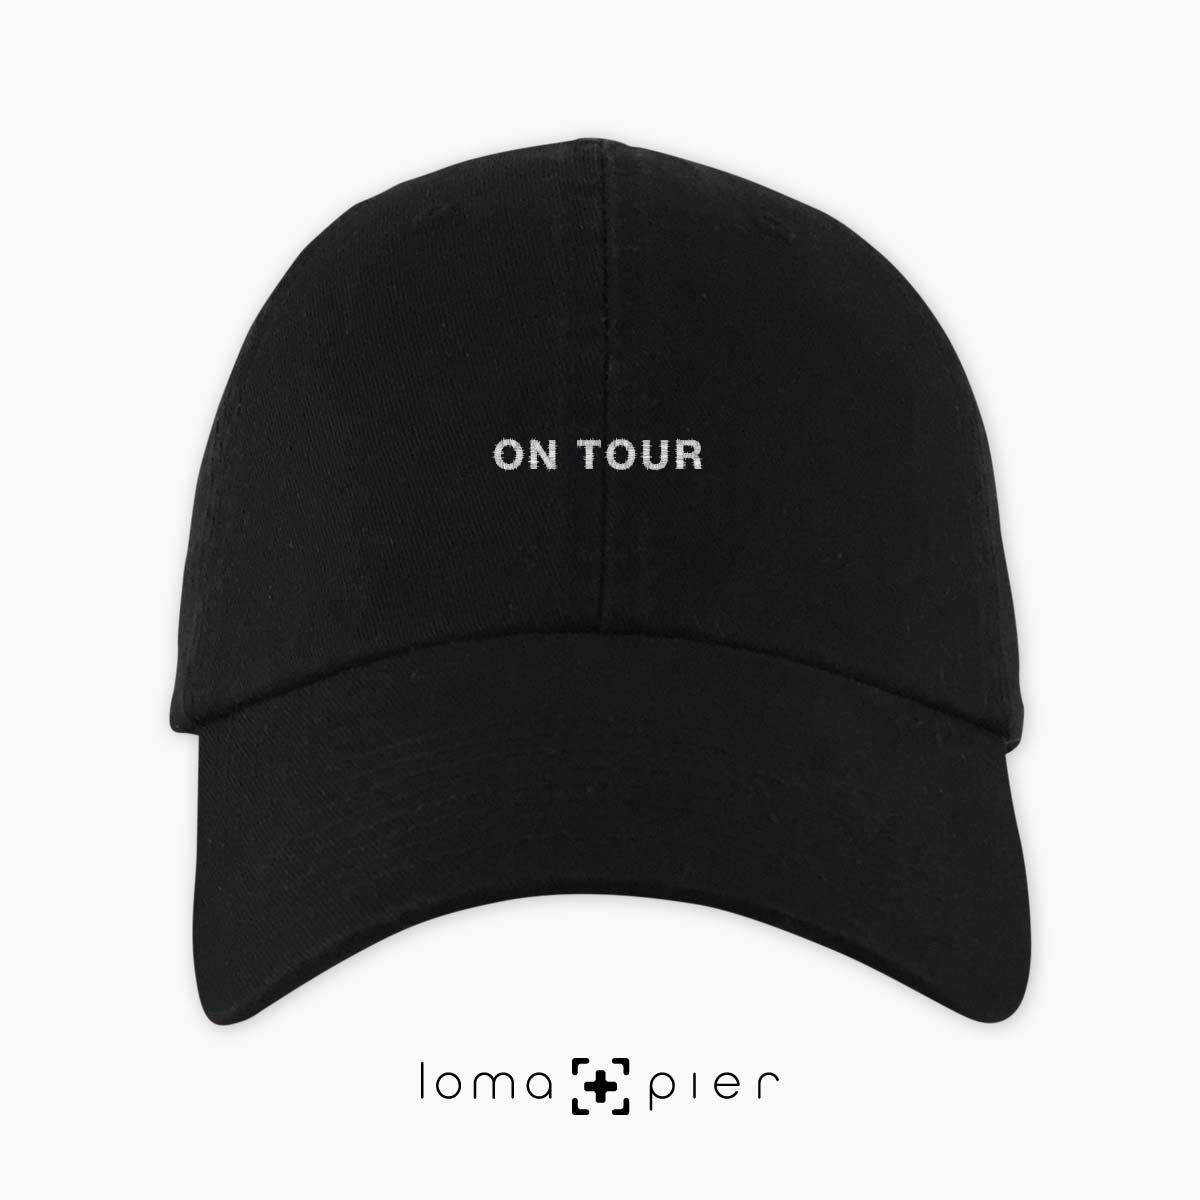 ON TOUR embroidered on a black unstructured dad hat by loma+pier hat store made in the USA